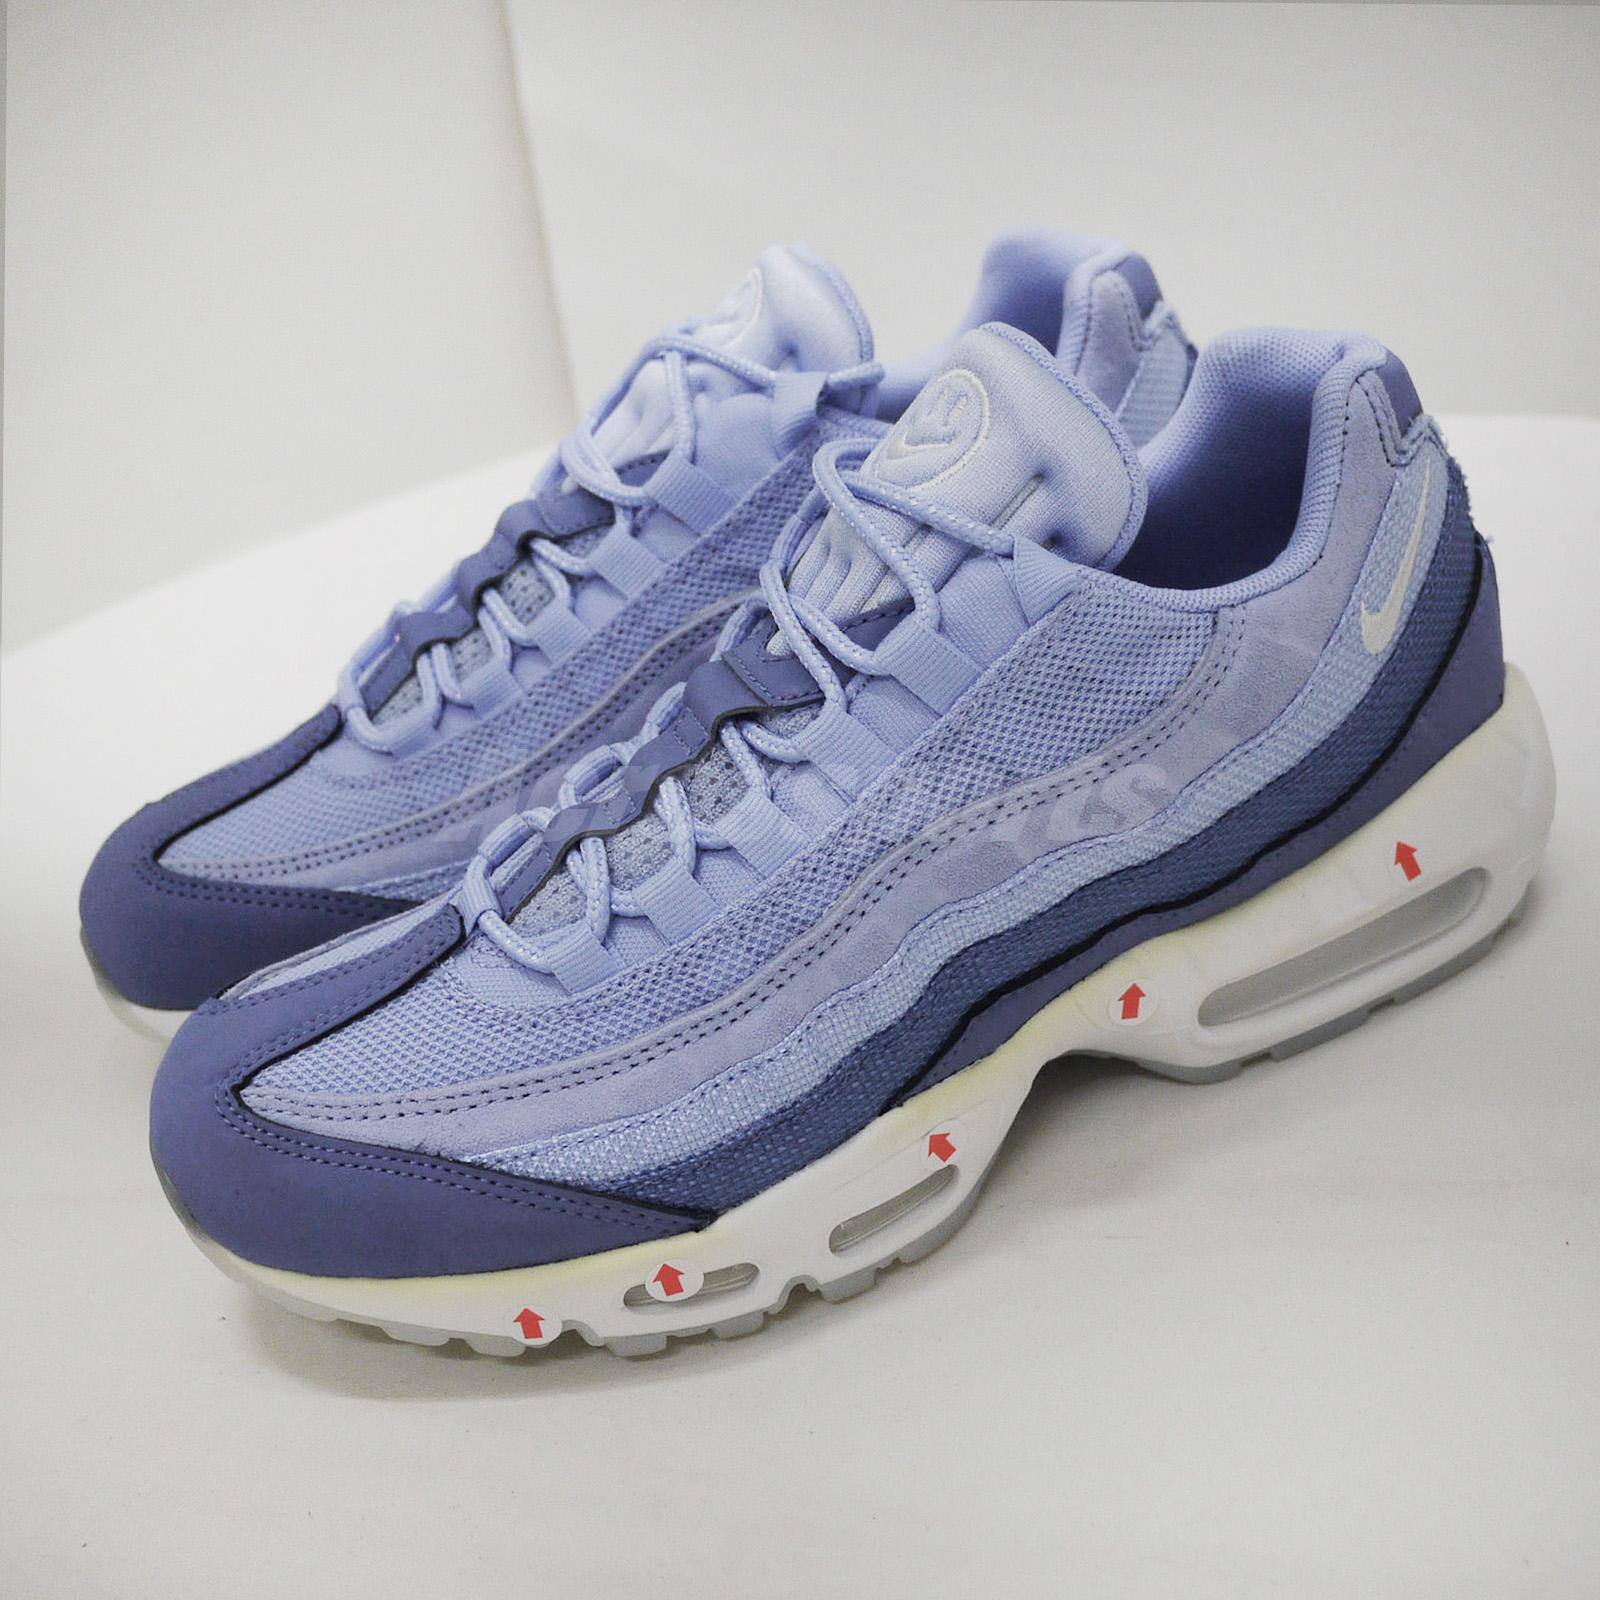 Nike Air Max 95 Nd Left Foot With Discoloration Blue Men Shoes Us8 Bq9131 400 Ebay